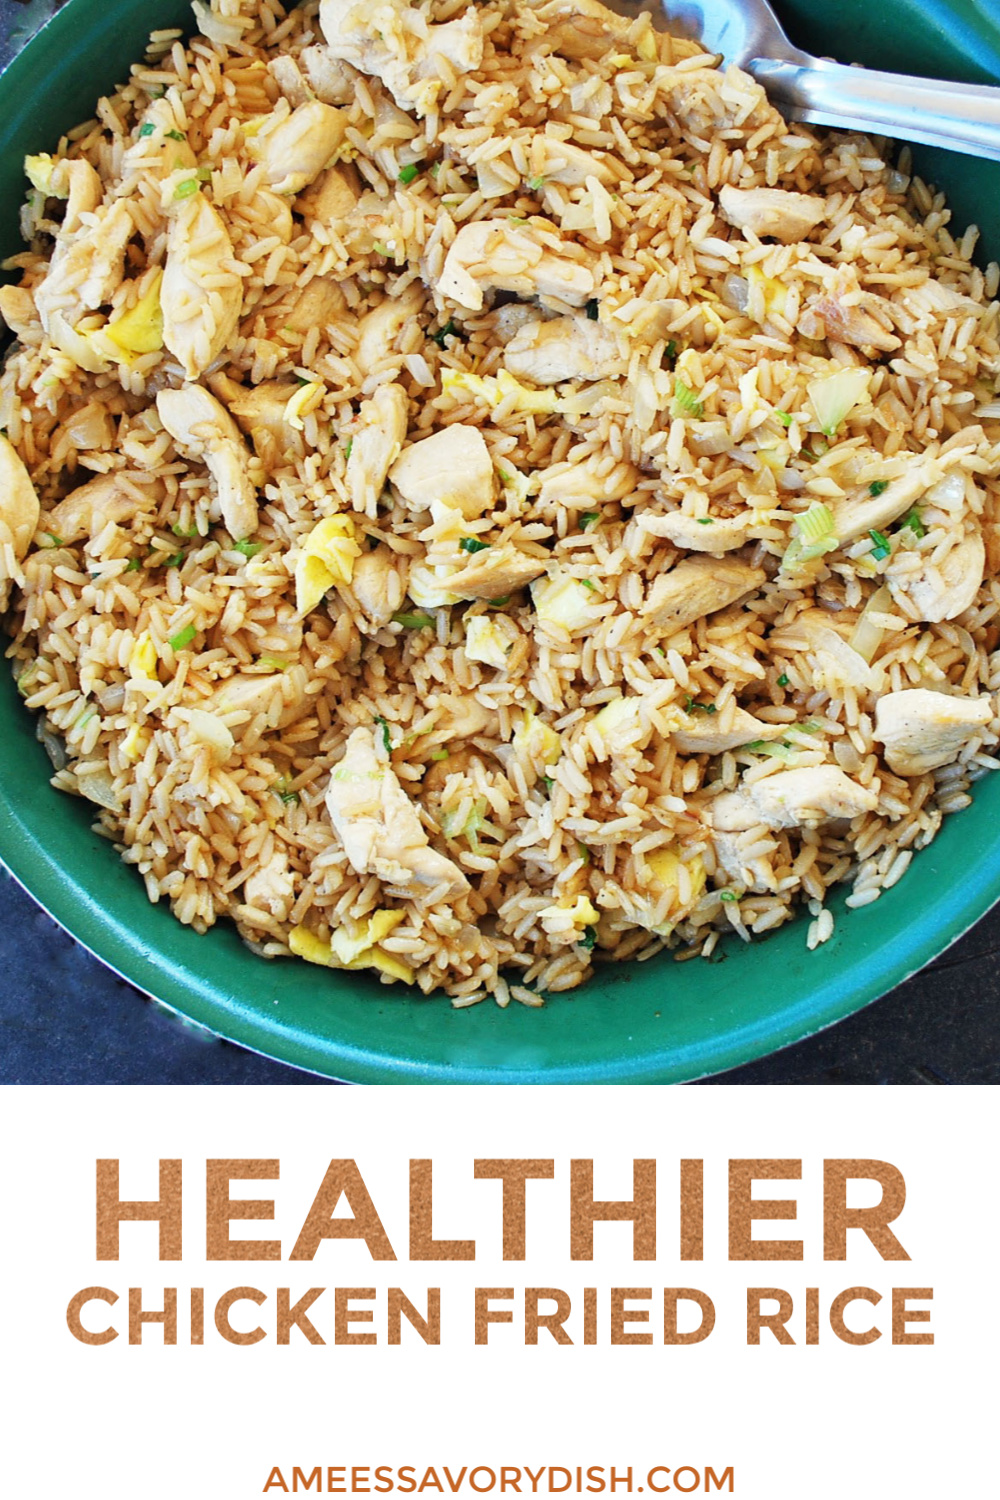 Healthier Chicken Fried Rice is better for you than take-out! This fried rice recipe is made without refined carbs and unhealthy fats. via @Ameecooks